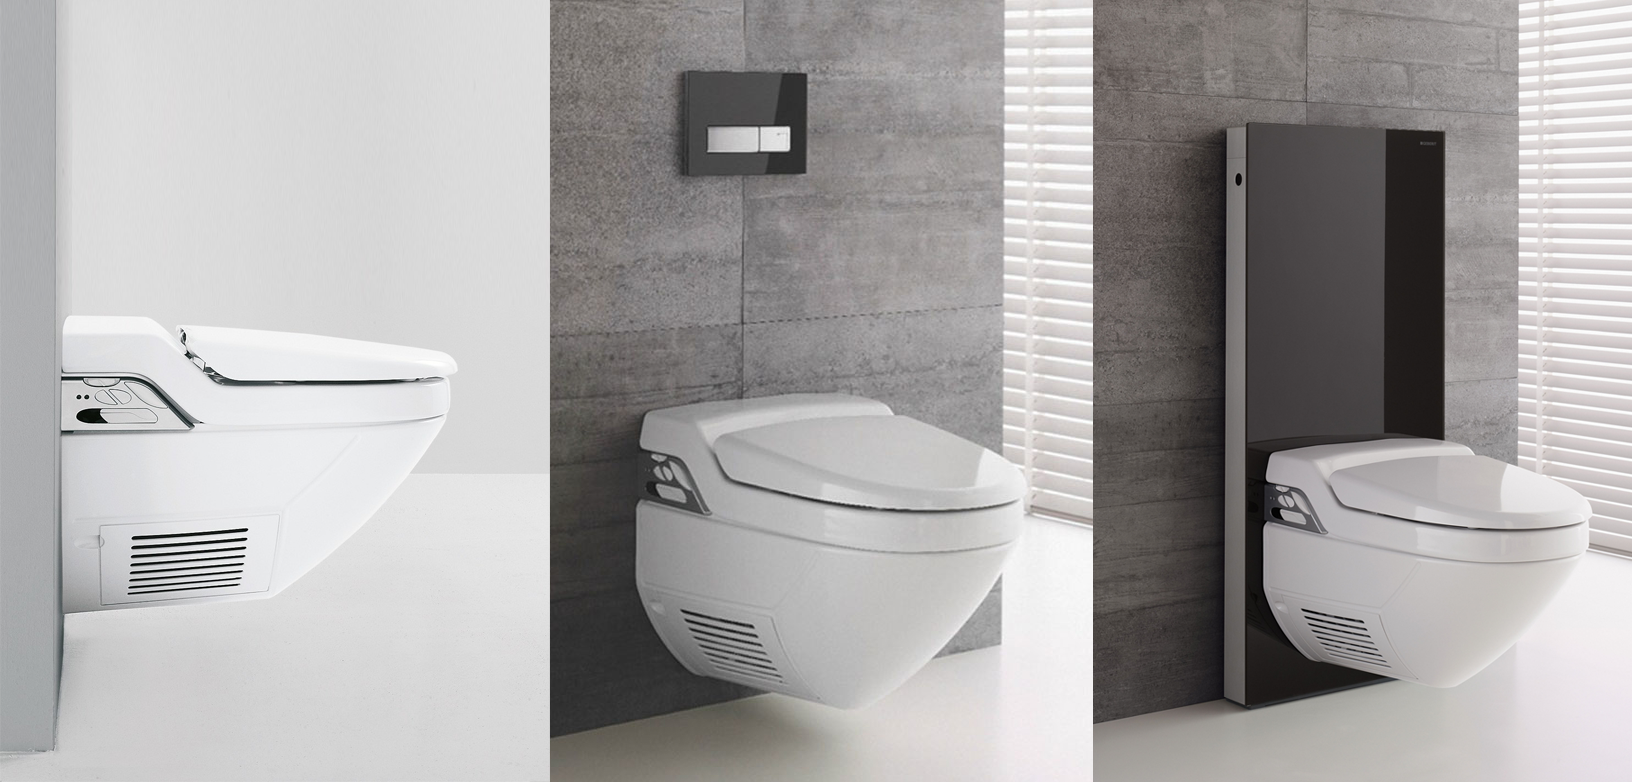 Geberit Aquaclean with Concealed Cistern (Left, Middle), with Monolith (Right)